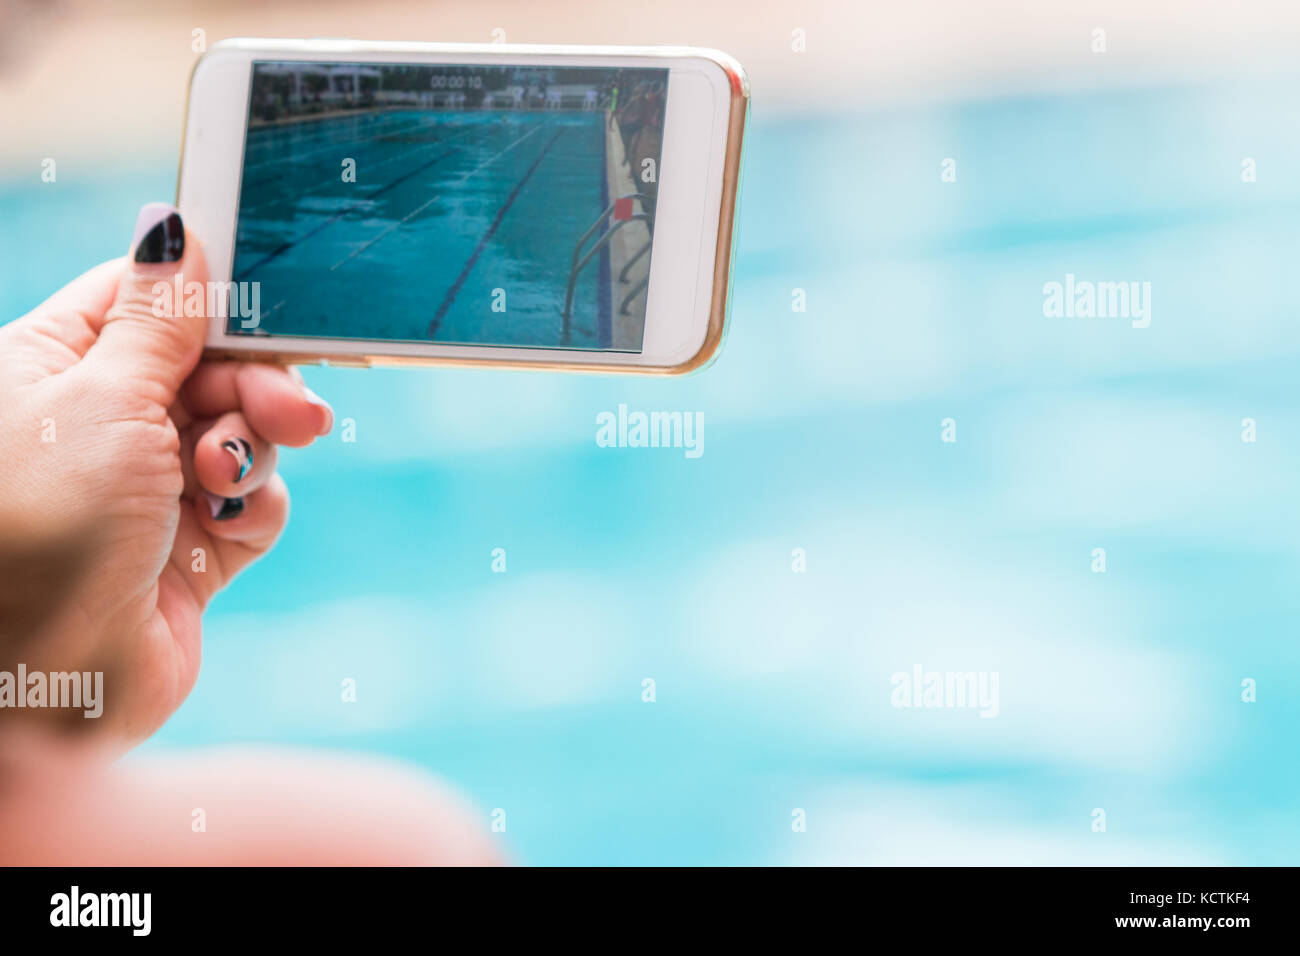 woman hand holding her phone recording swimming pool activities, selective focus, and room for text or copy space - Stock Image